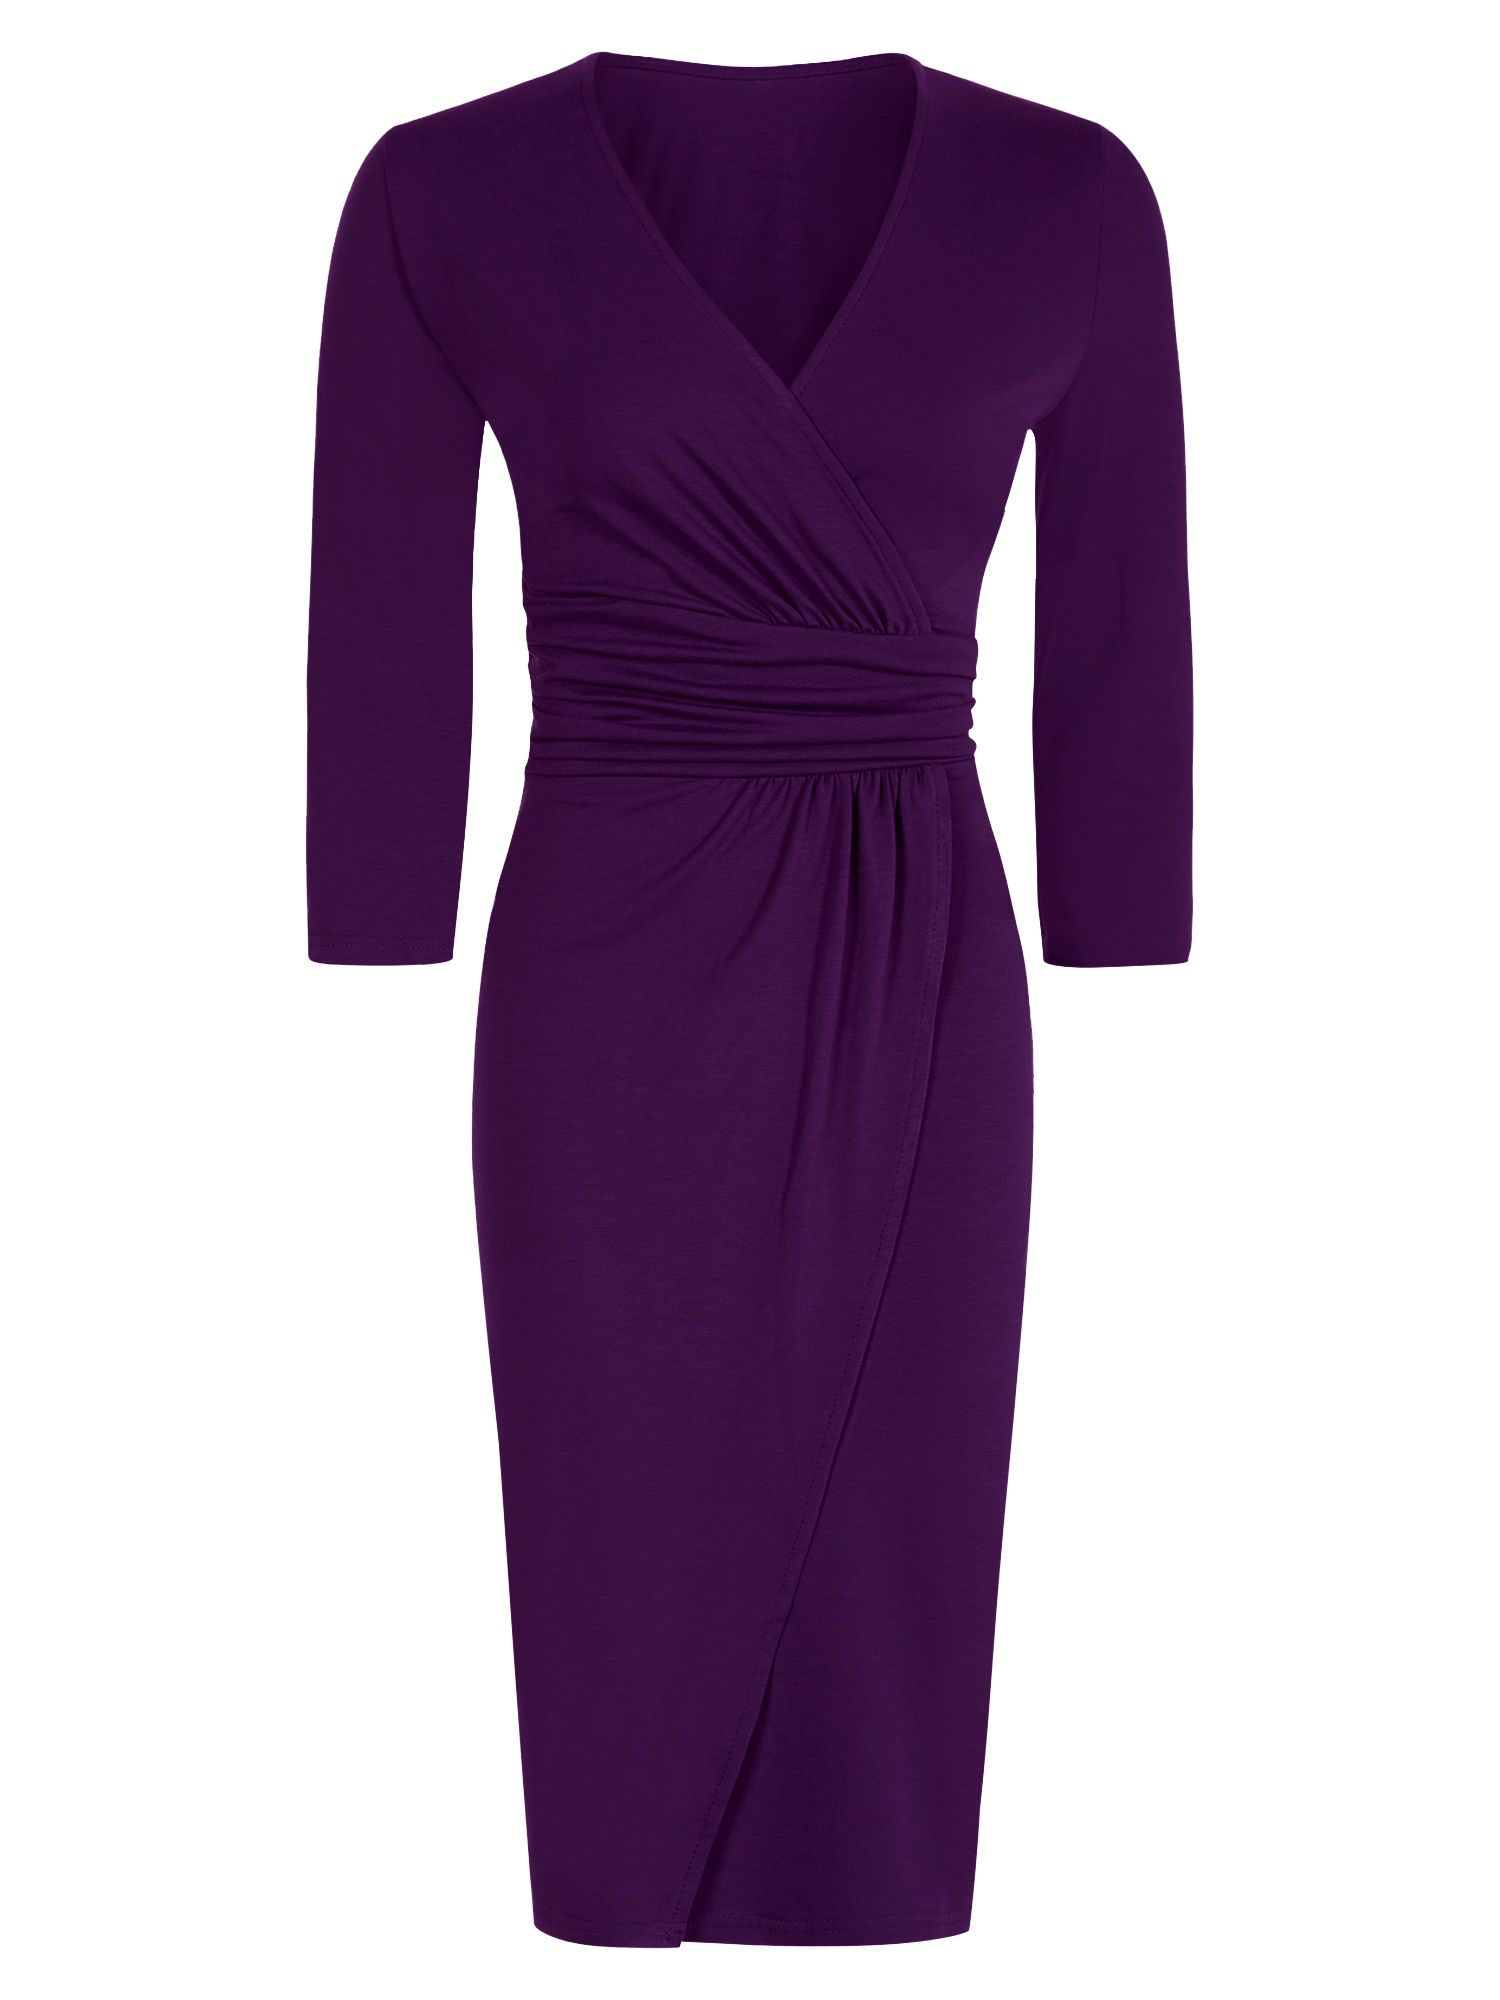 HotSquash V neck Mock Wrap Thermal Dress, Damson